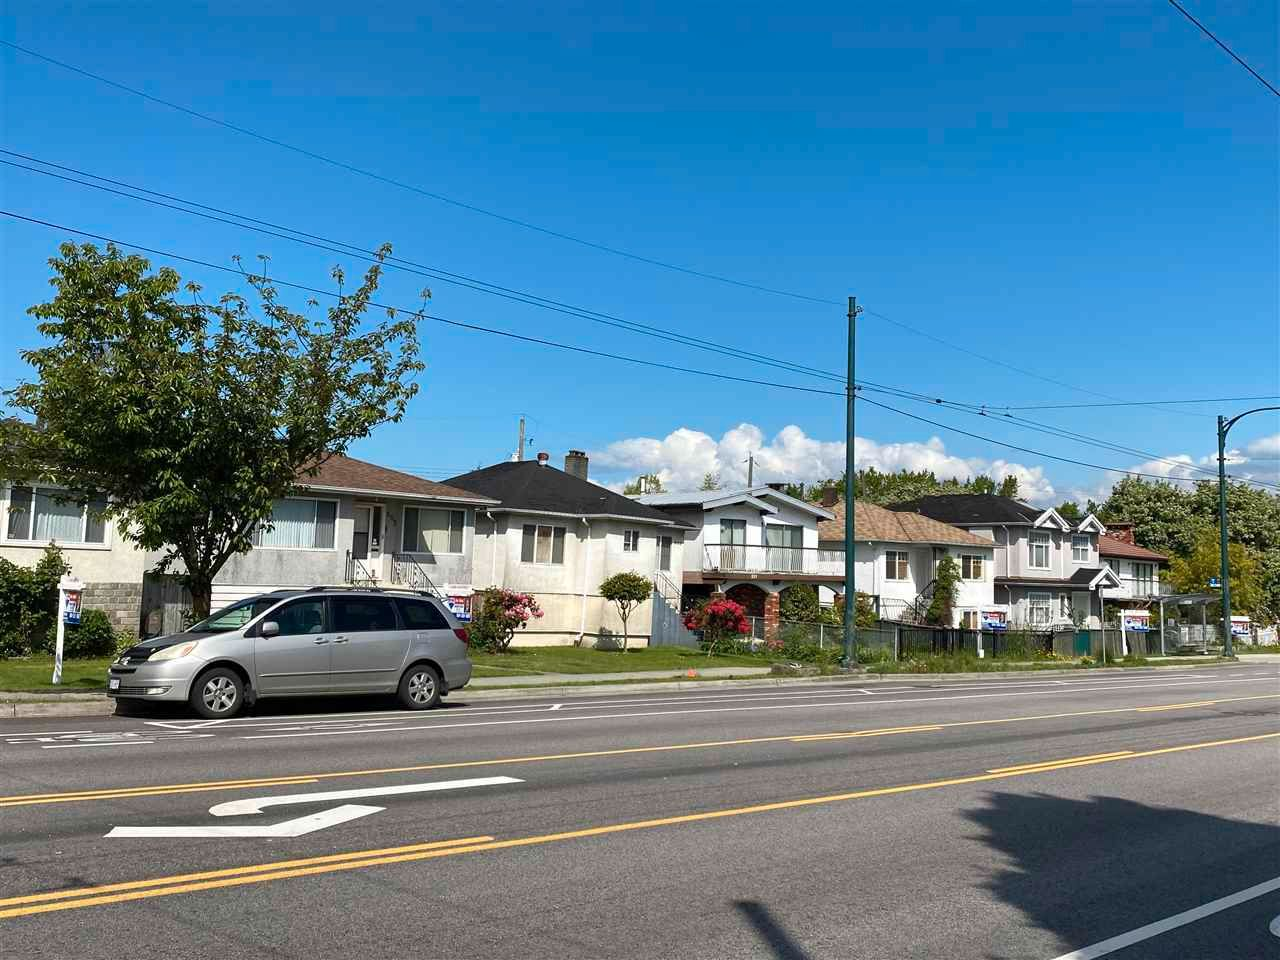 Photo 3: Photos: 875 NANAIMO Street in Vancouver: Hastings House for sale (Vancouver East)  : MLS®# R2567915